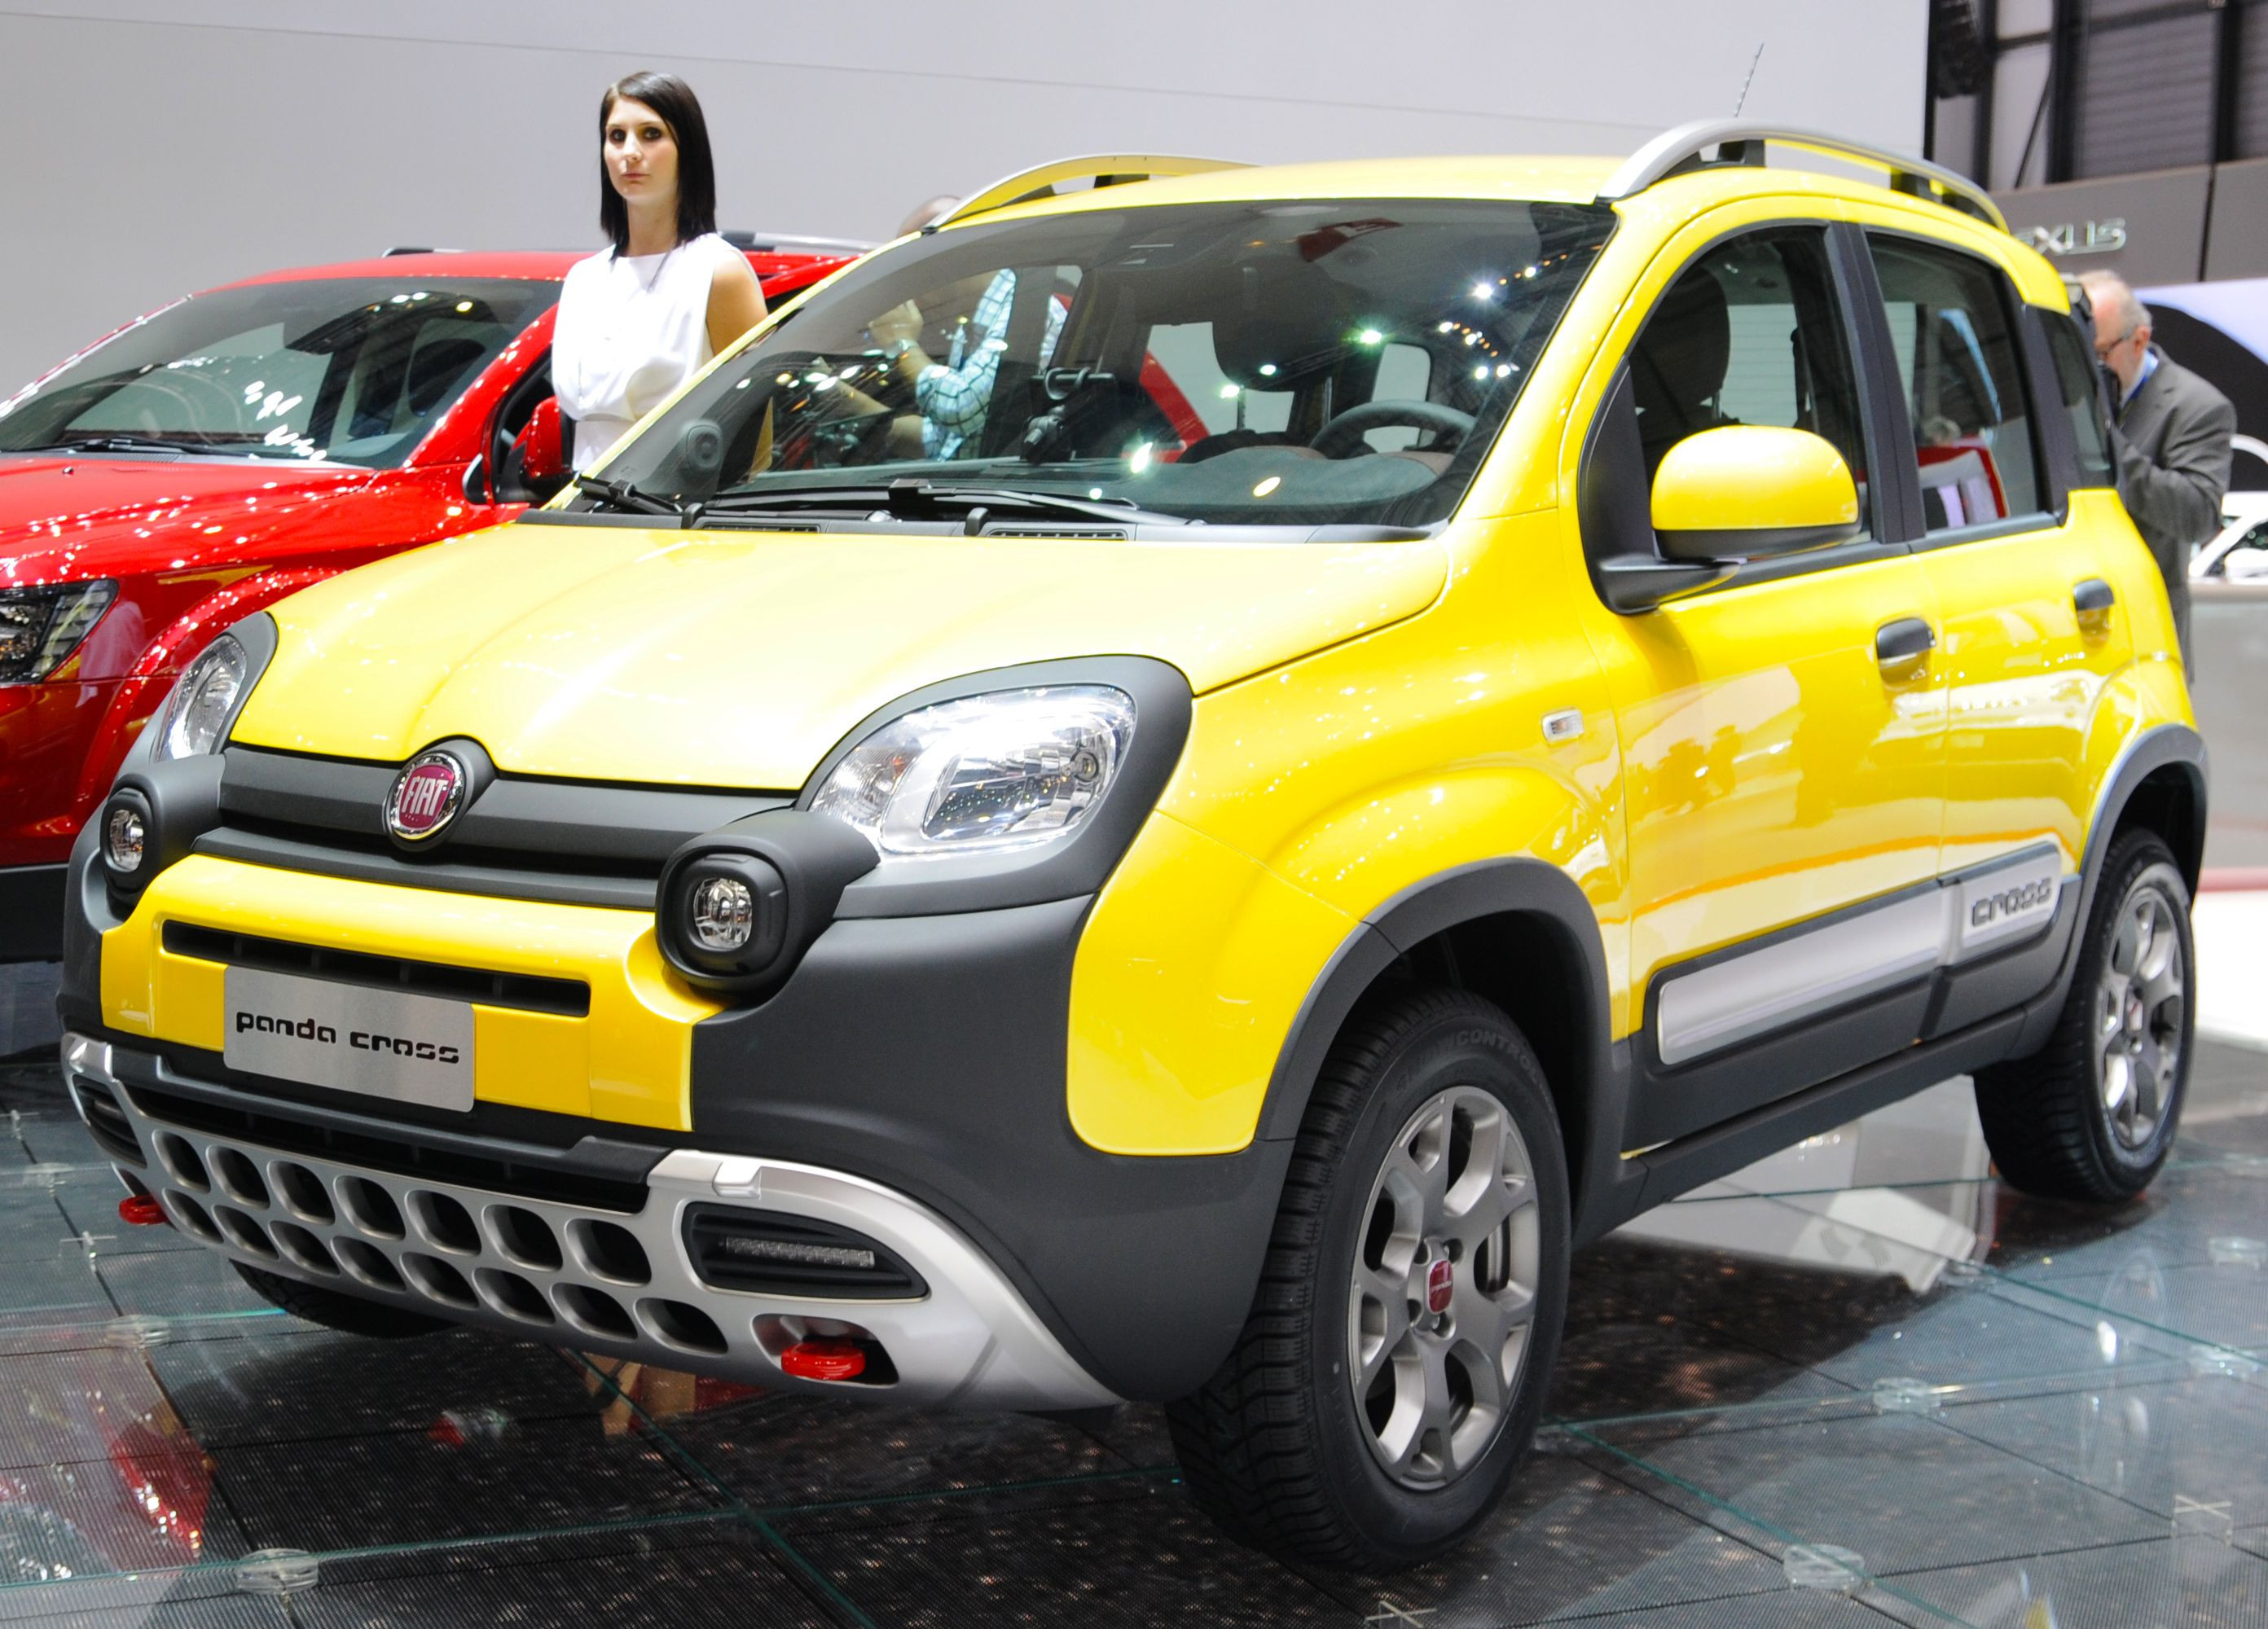 Yellow Fiat panda cross car at a motor show